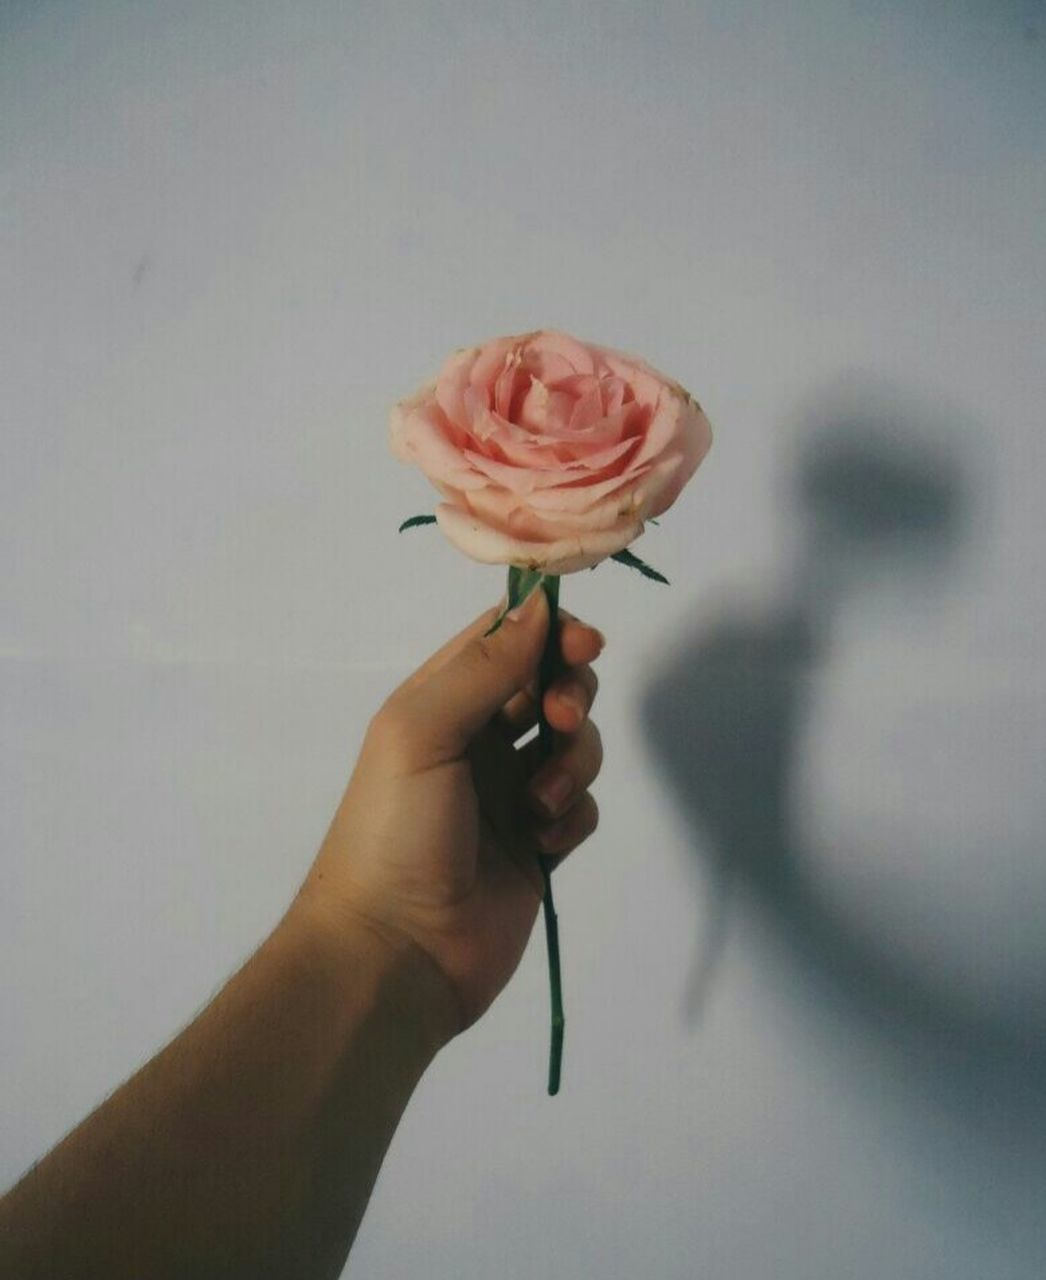 human hand, holding, flower, human body part, one person, rose - flower, real people, human finger, fragility, petal, close-up, freshness, flower head, nature, sweet food, outdoors, beauty in nature, dripping, day, people